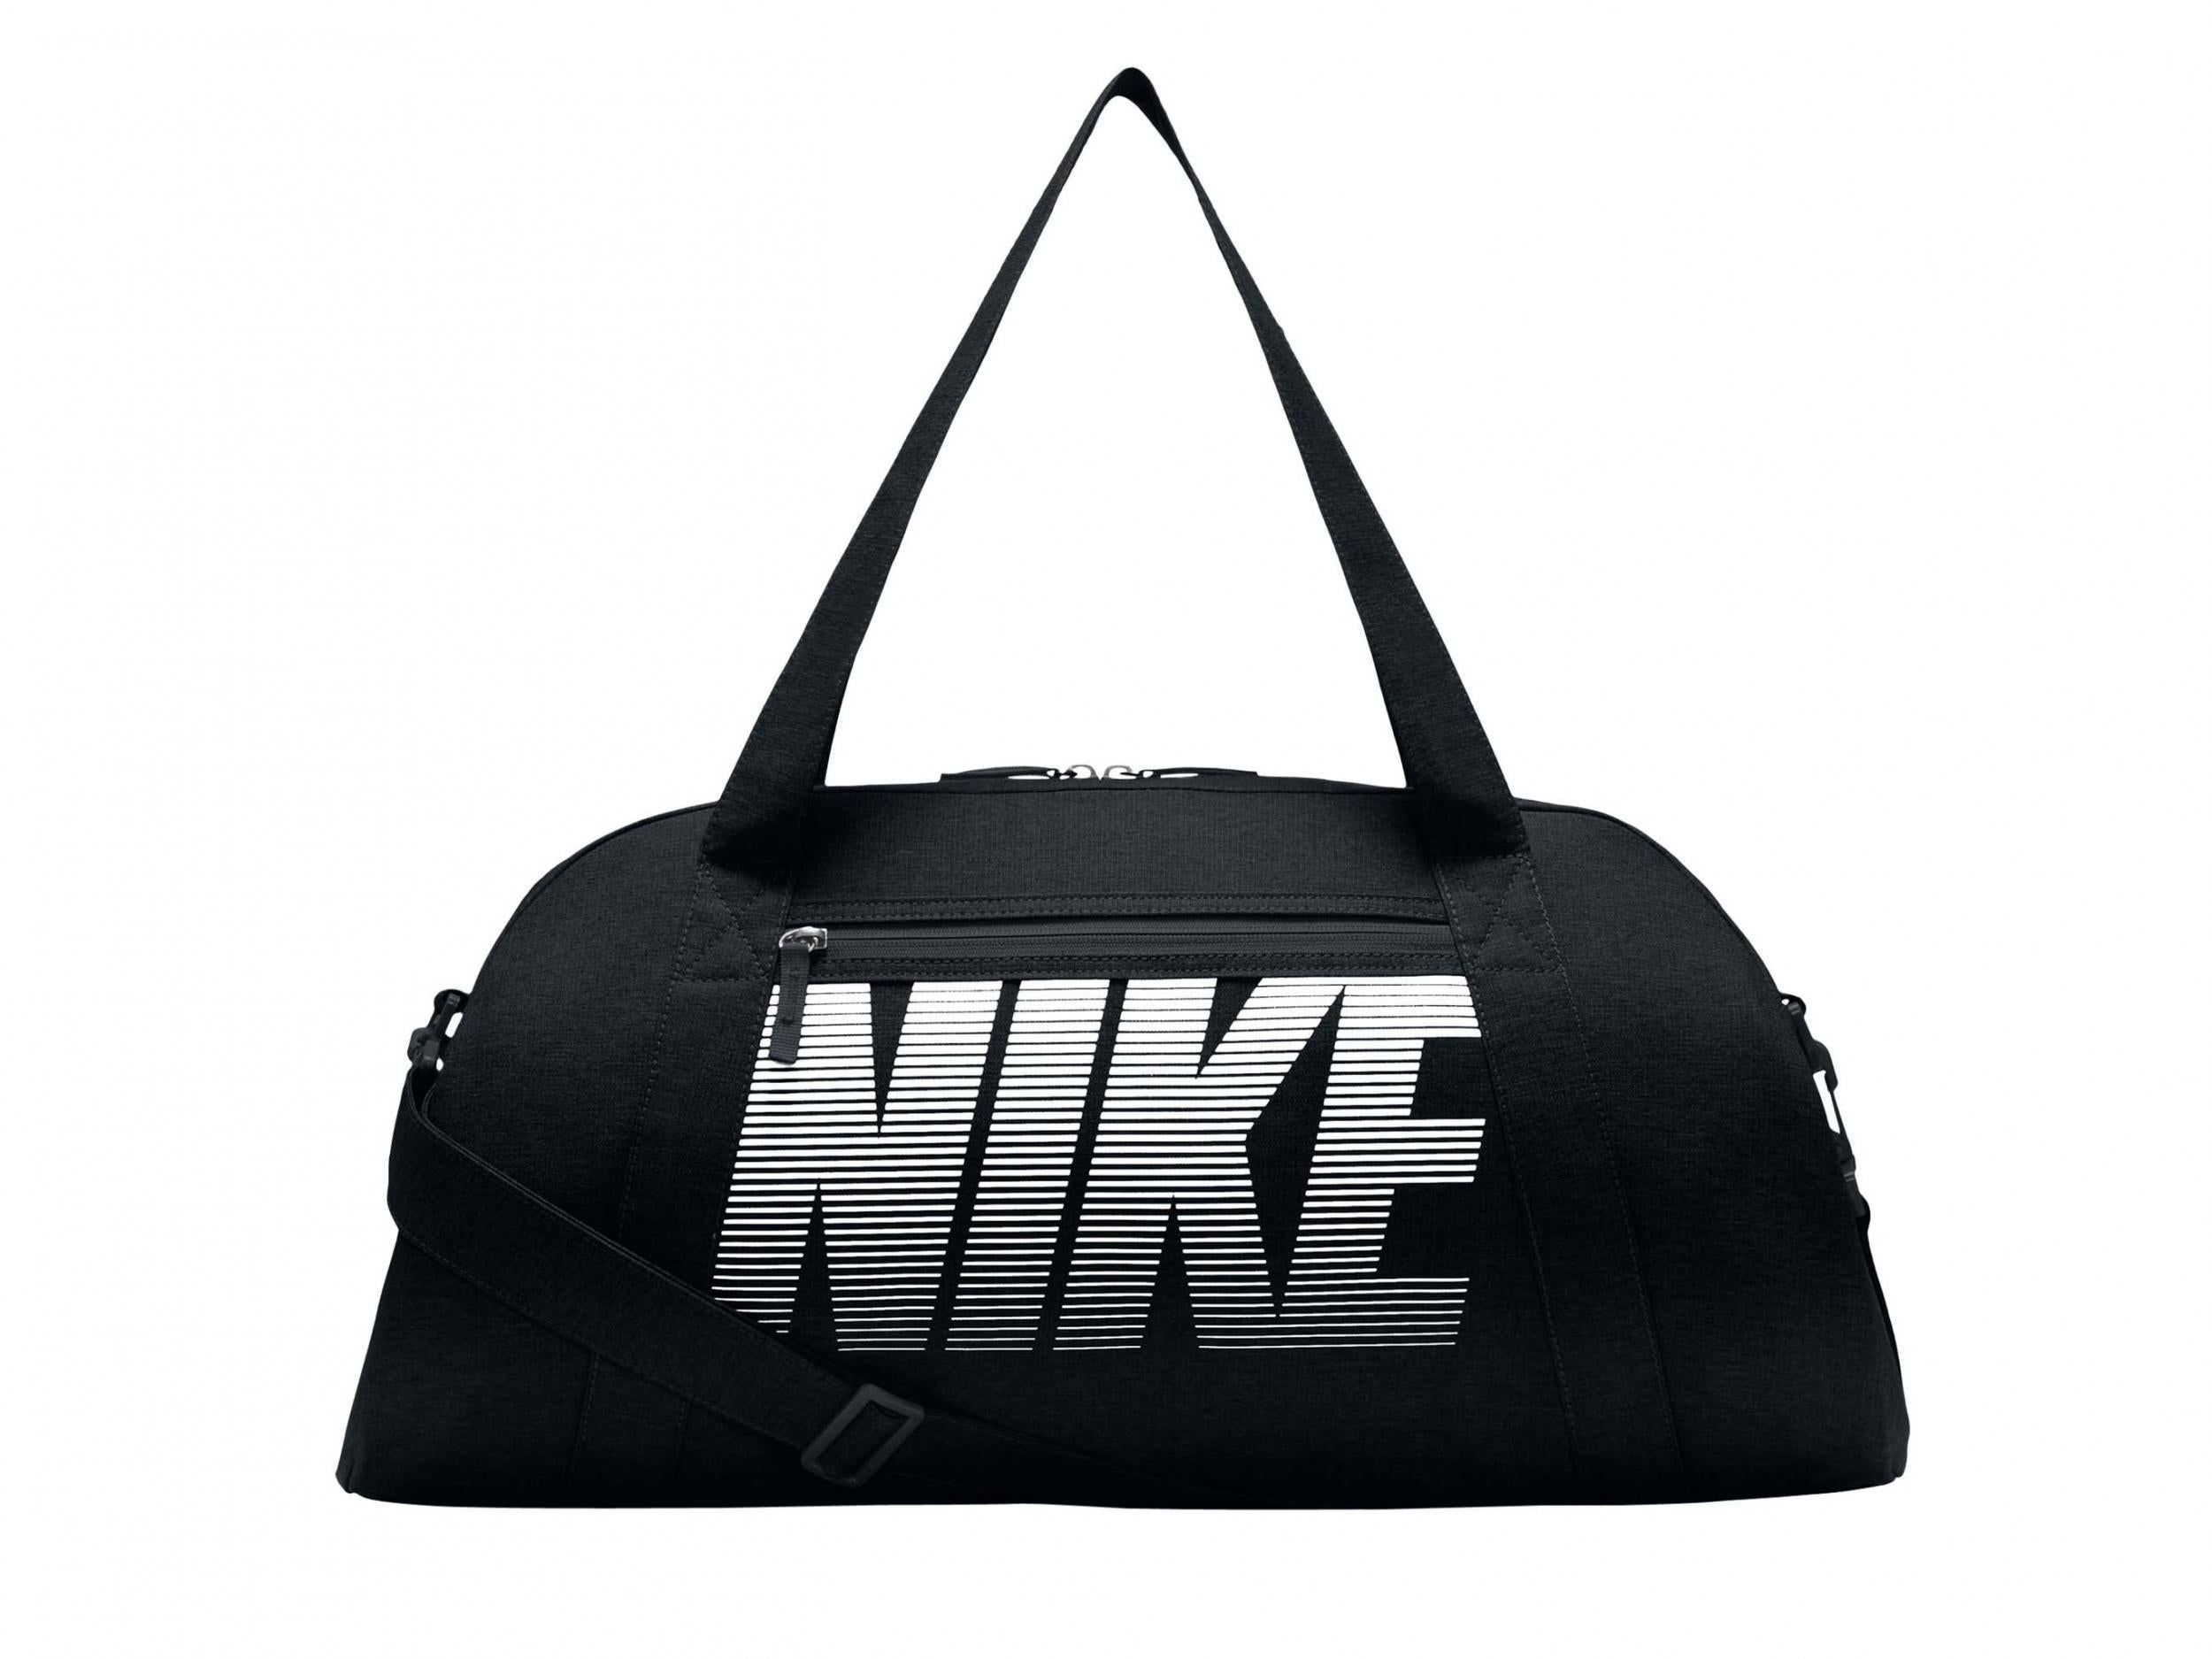 bc8925a0e8 11 best gym bags for women | The Independent